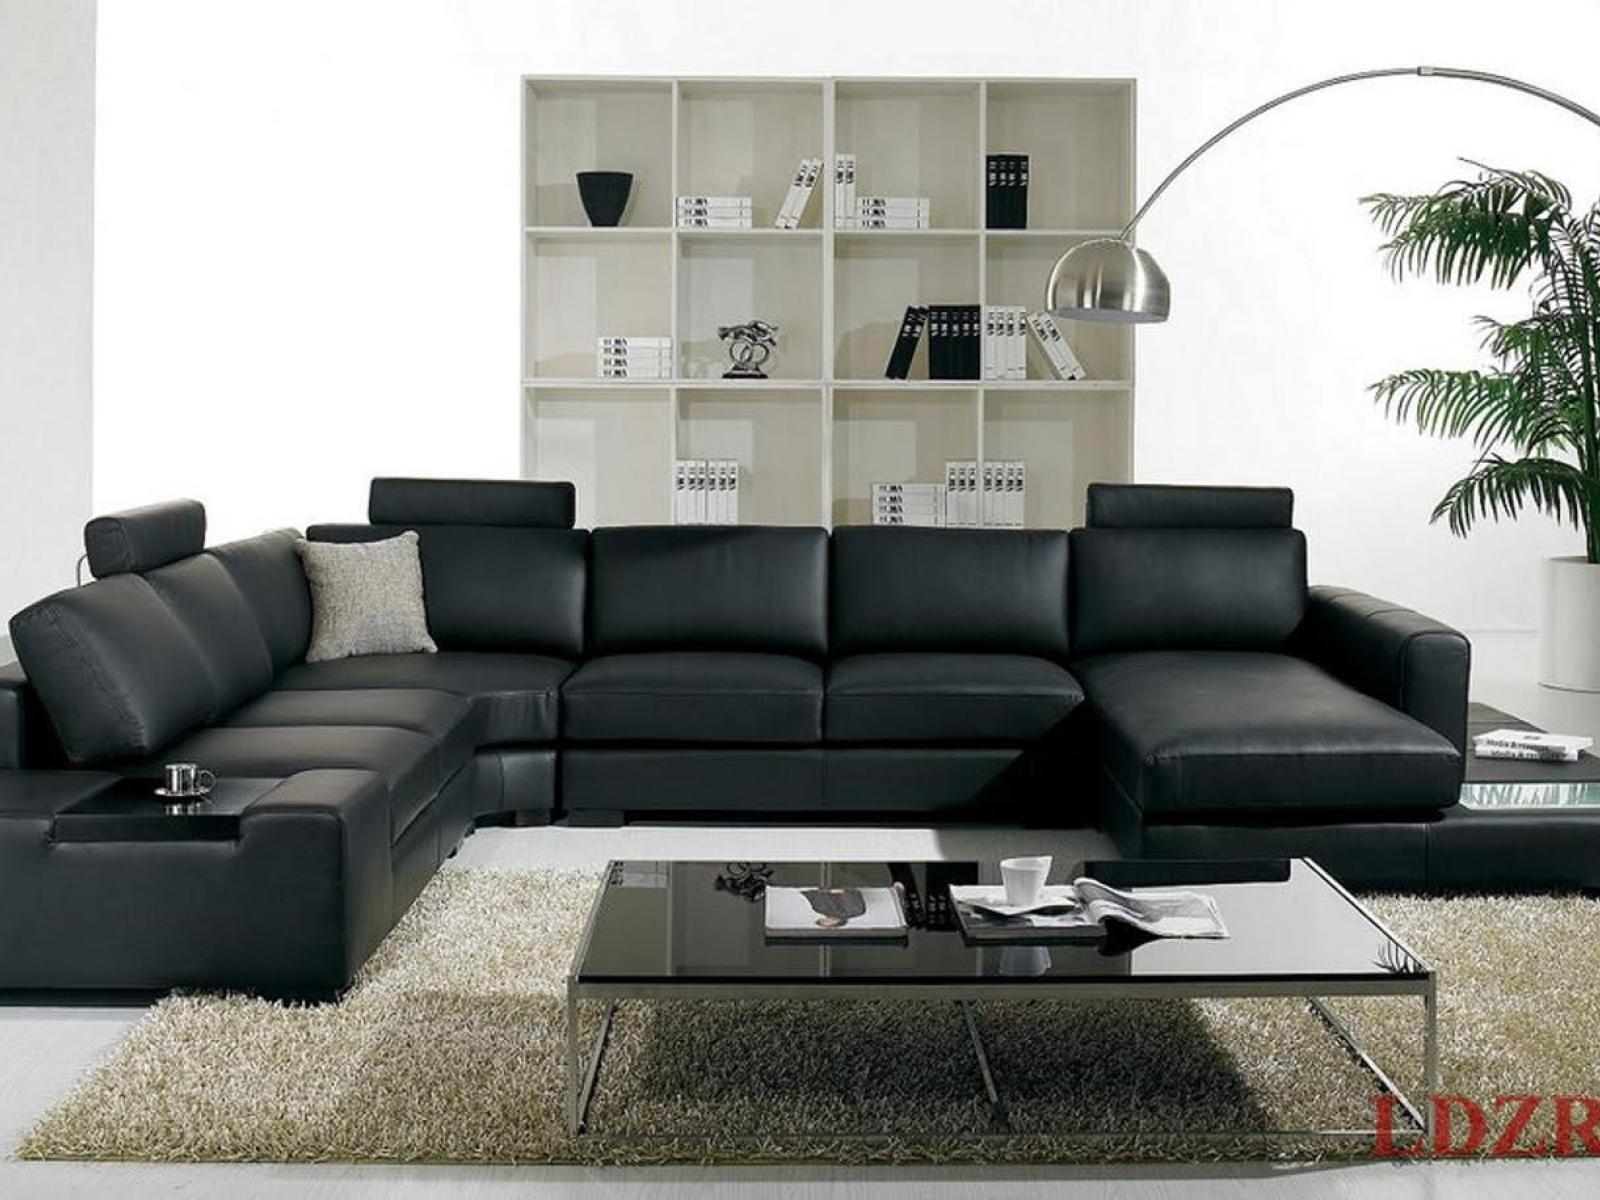 ▻ Sofa : 22 Lovely Modern Formal Dining Room Sets 5 Red Leather Pertaining To Sofa Chairs For Living Room (Image 1 of 20)